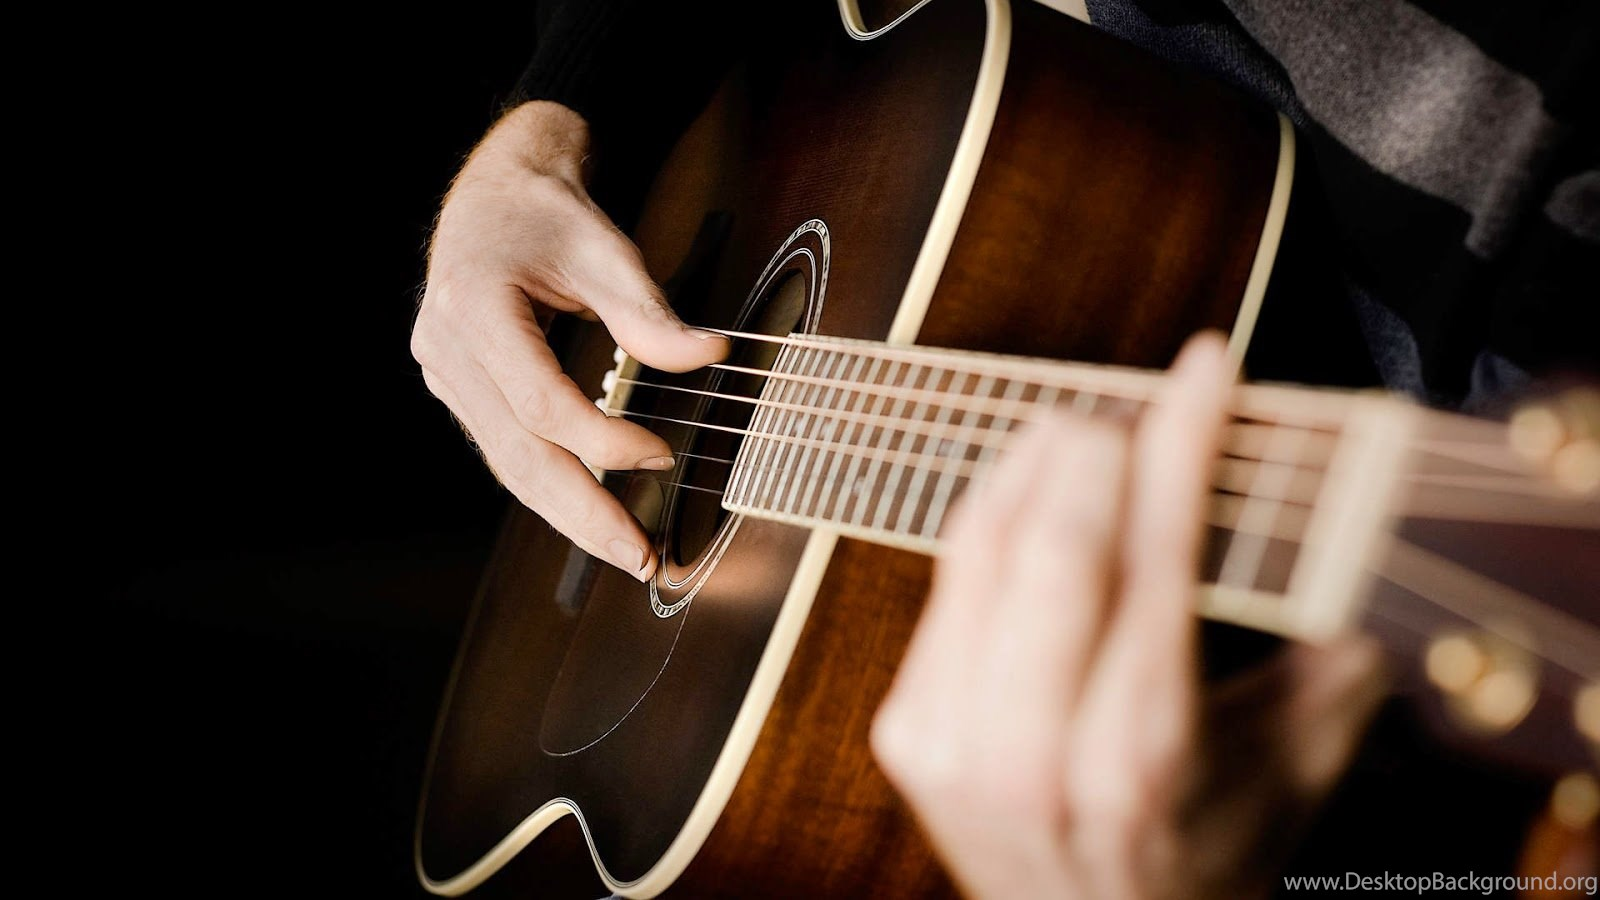 Acoustic Guitar Wallpaper Hd 1080p Download Wallpapers For Pc Desktop Background